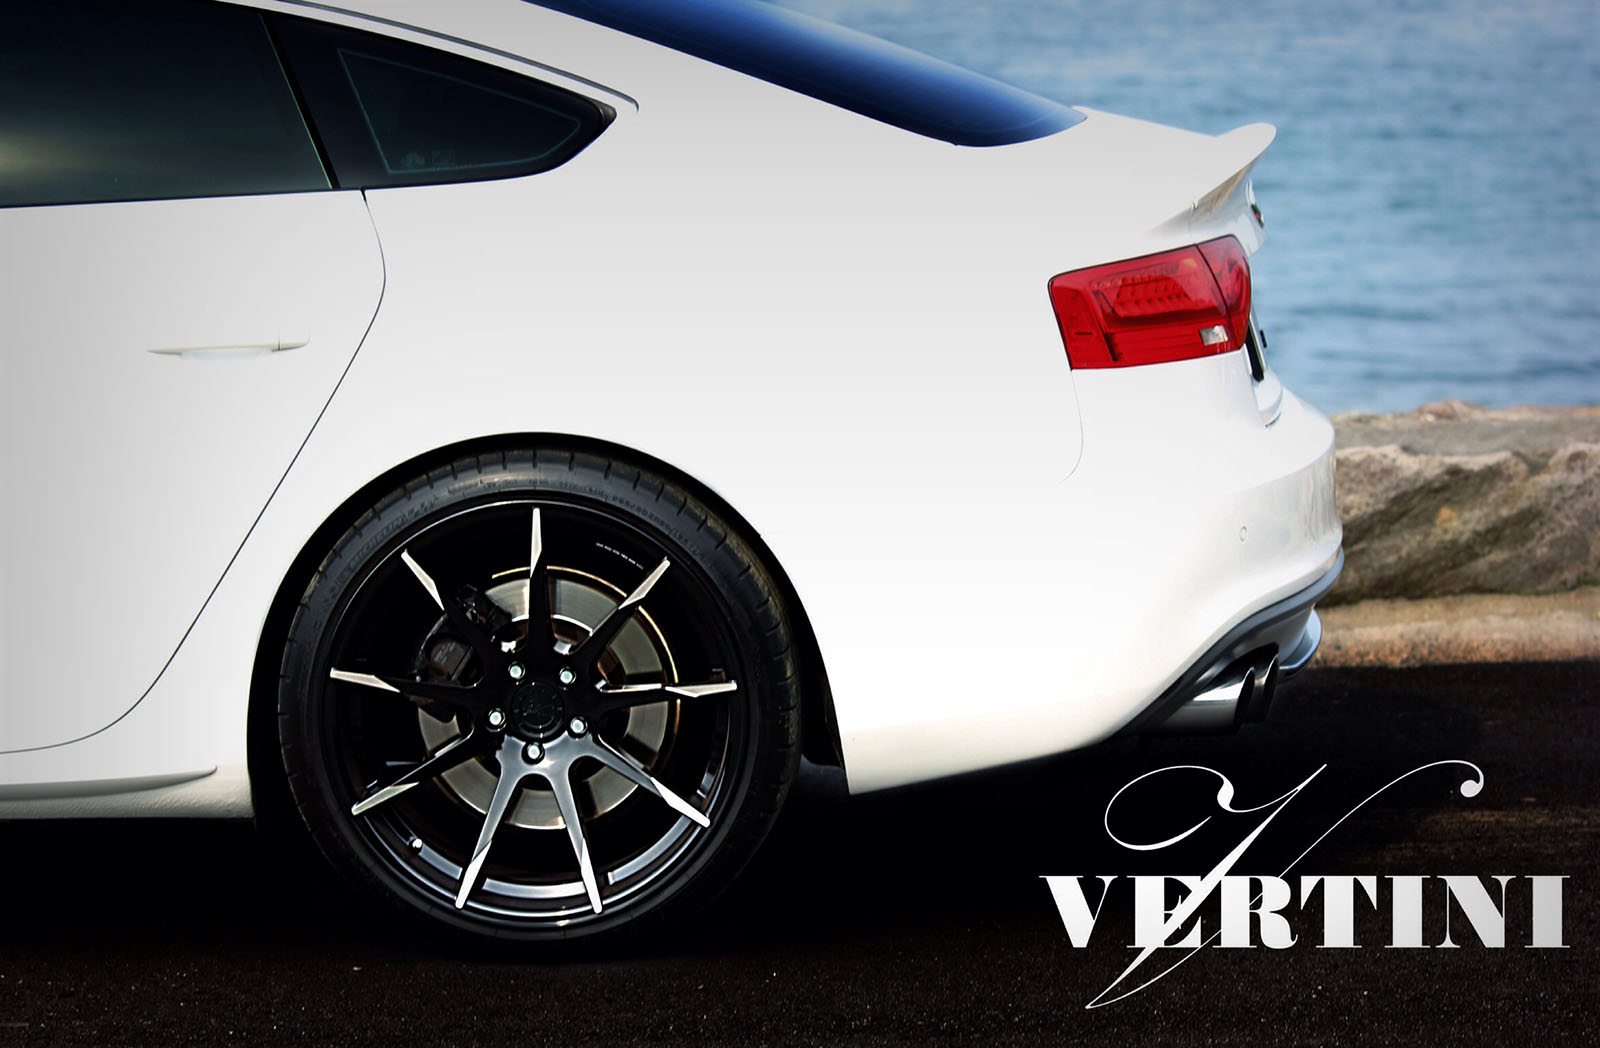 Vertini Flying Black R20 on Audi S5